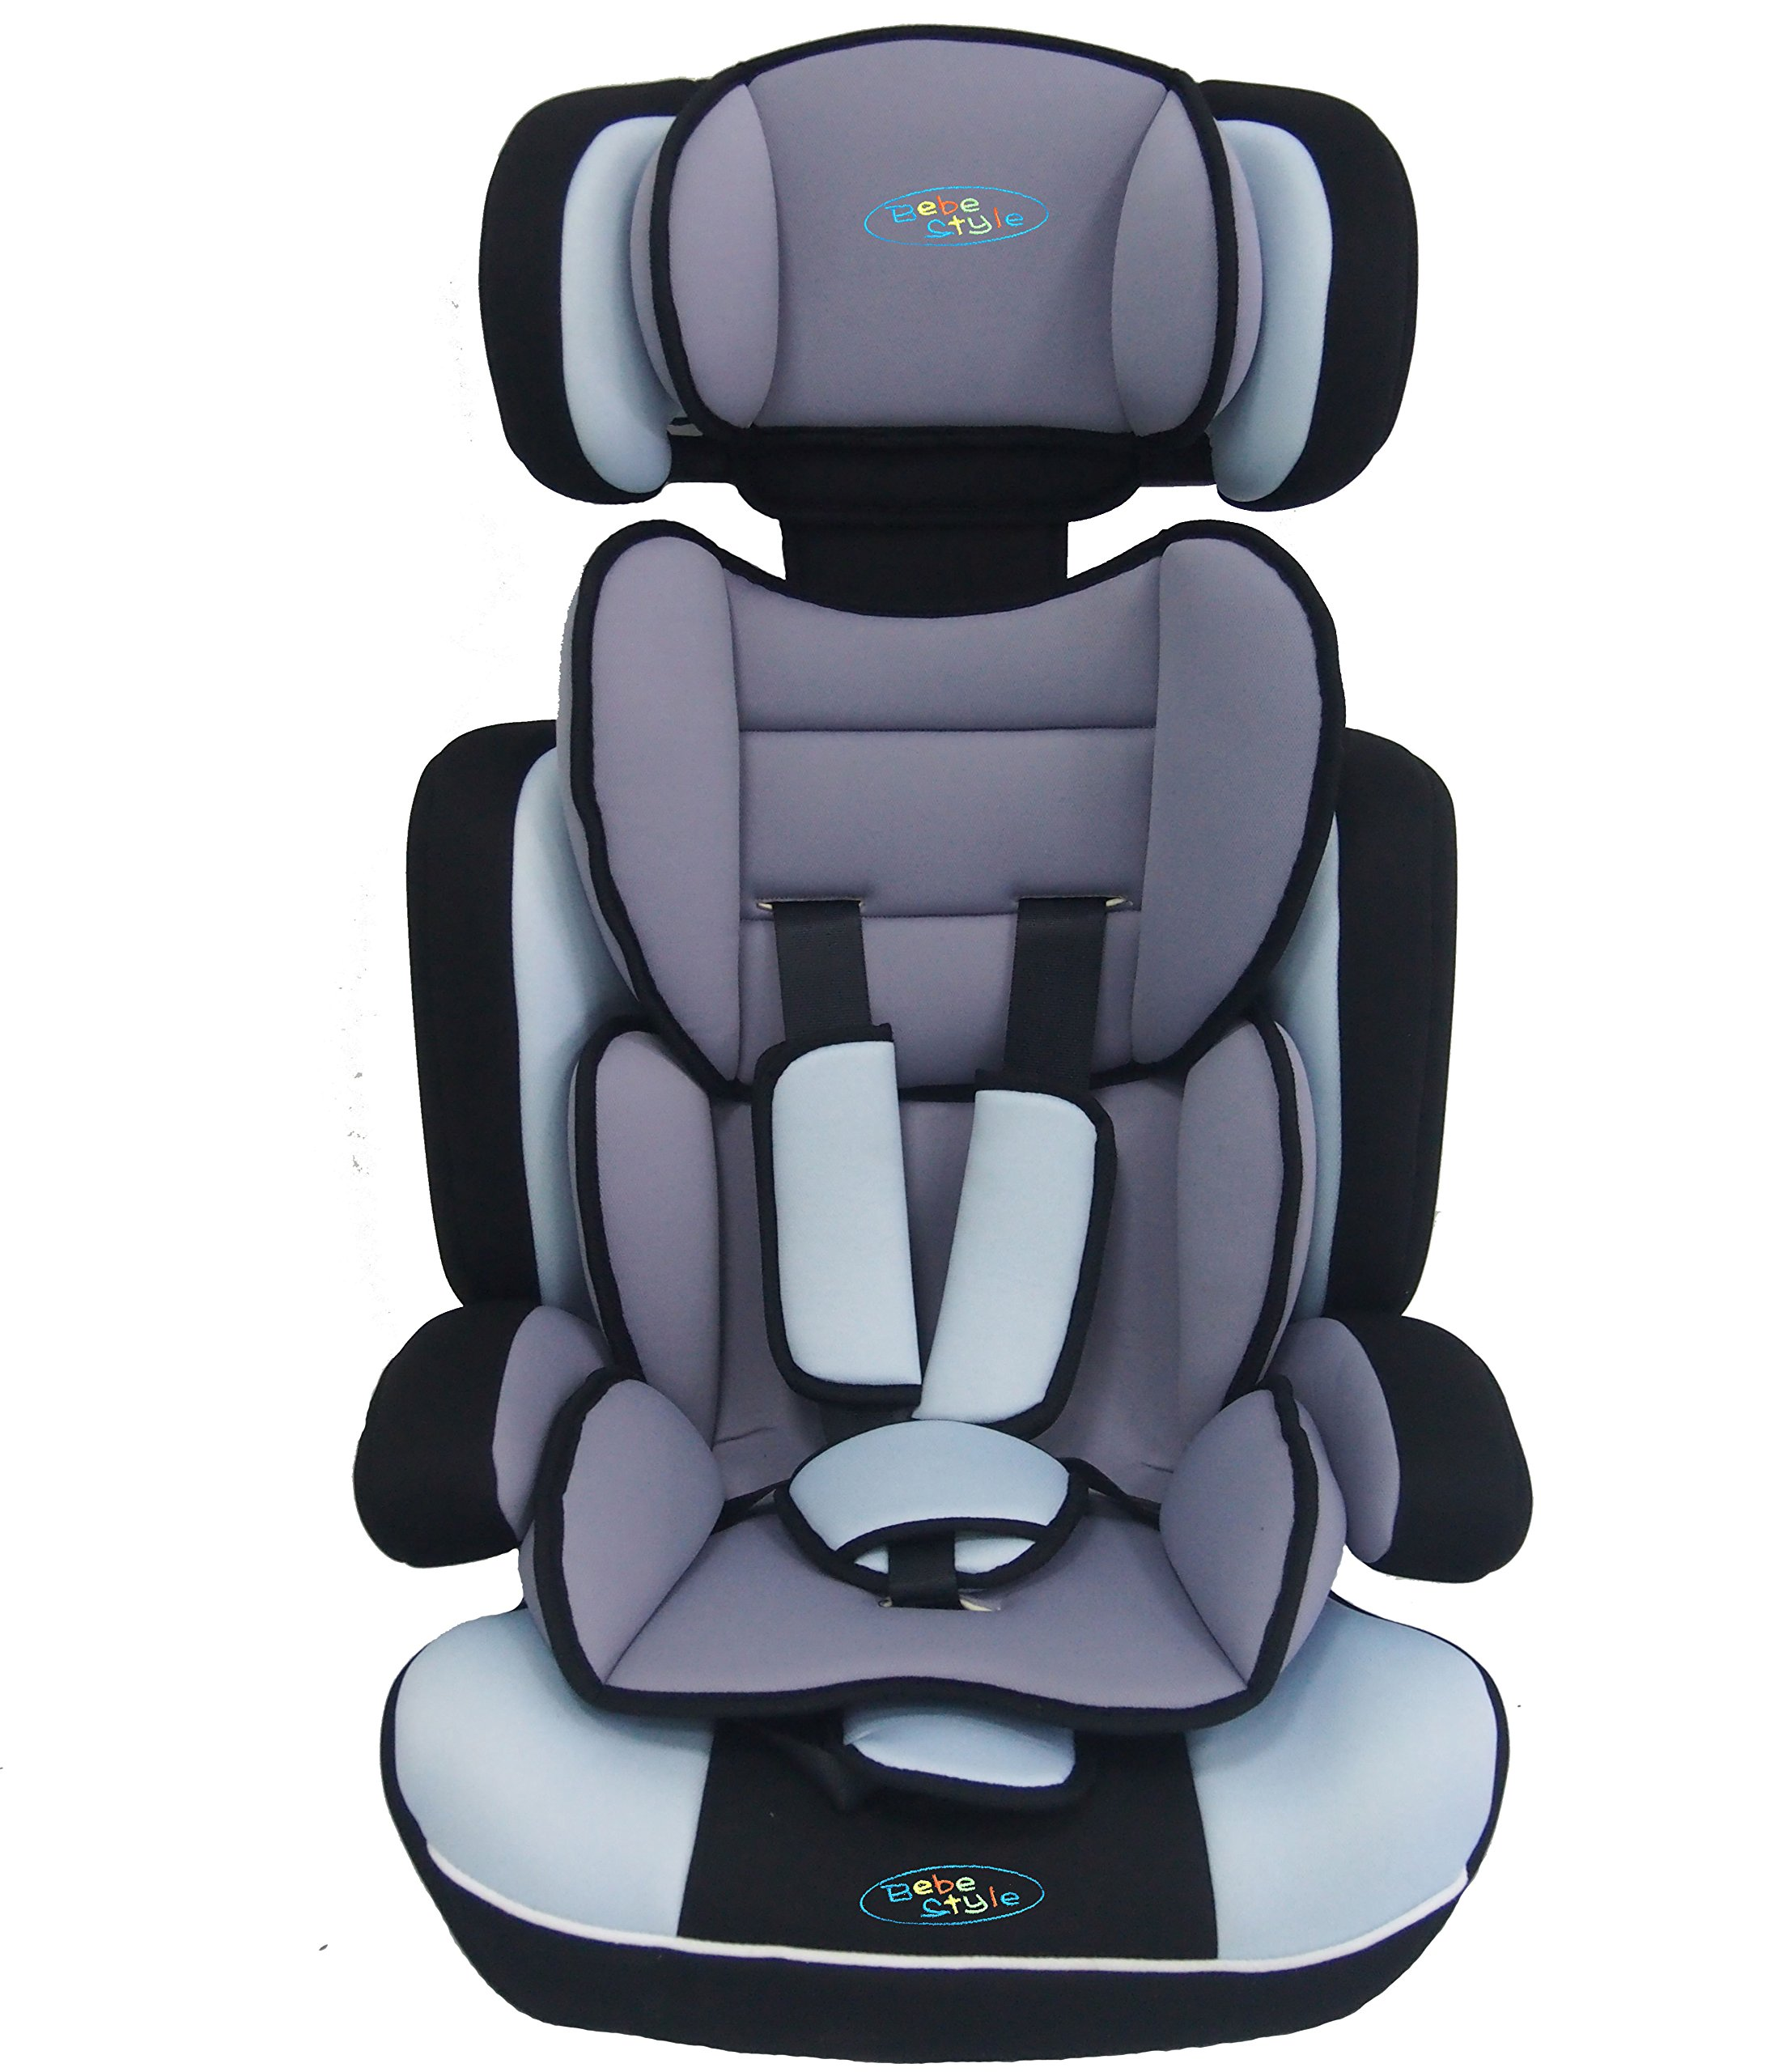 Bebe Style Convertiblle 1/2/3 Combination Car Seat and Booster Seat - Blue  From 9 months to 12 years old, one size fits all (9-36kg) Converts to booster seat.  Very Thick Padding Adjustable height of headrest and shoulder straps for the growing needs of the child 3